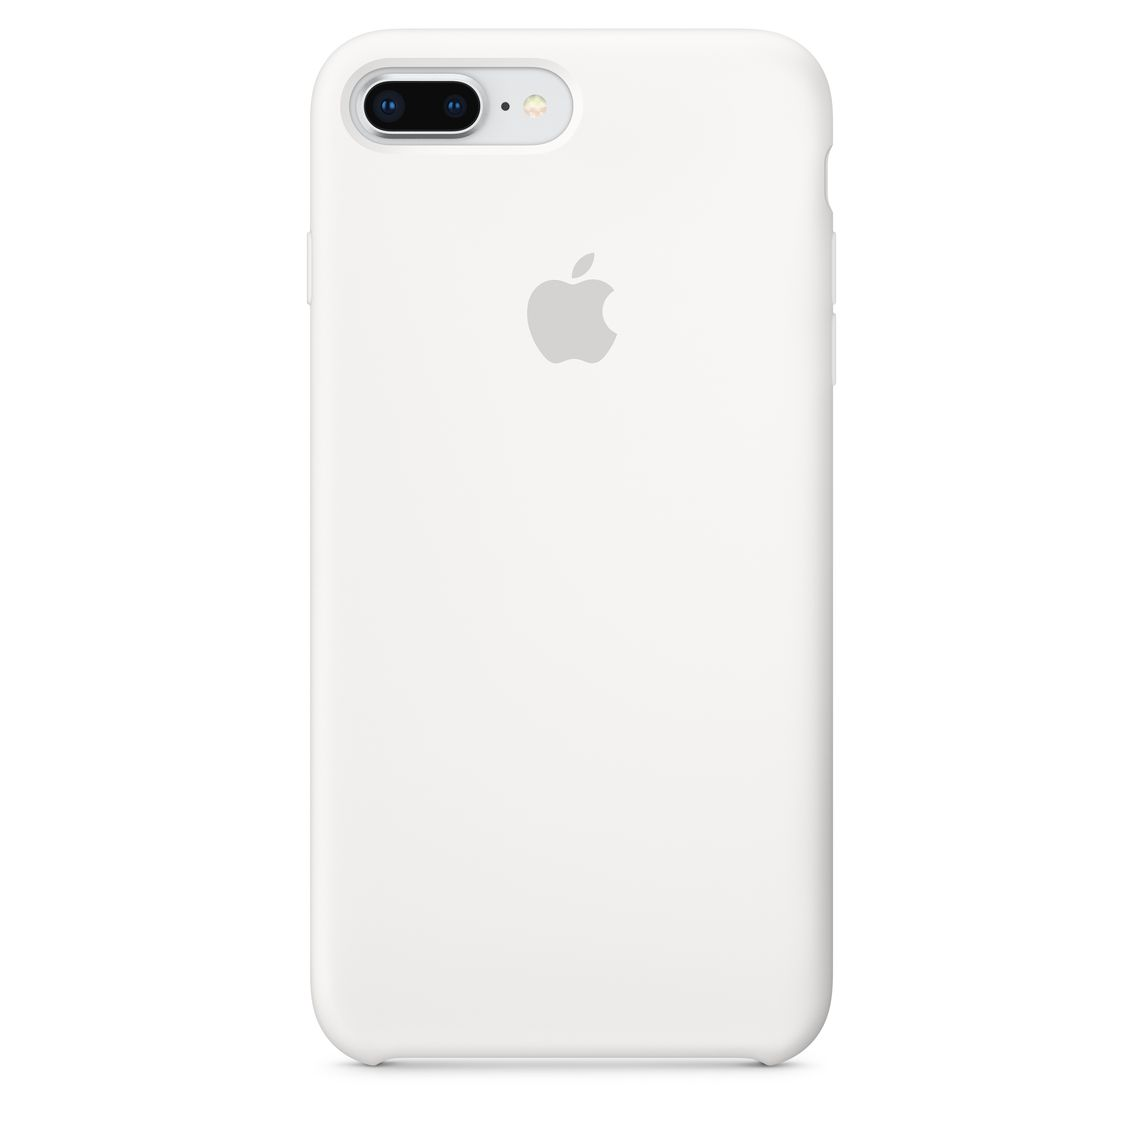 quality design 50be6 86a63 iPhone 8 Plus / 7 Plus Silicone Case — White